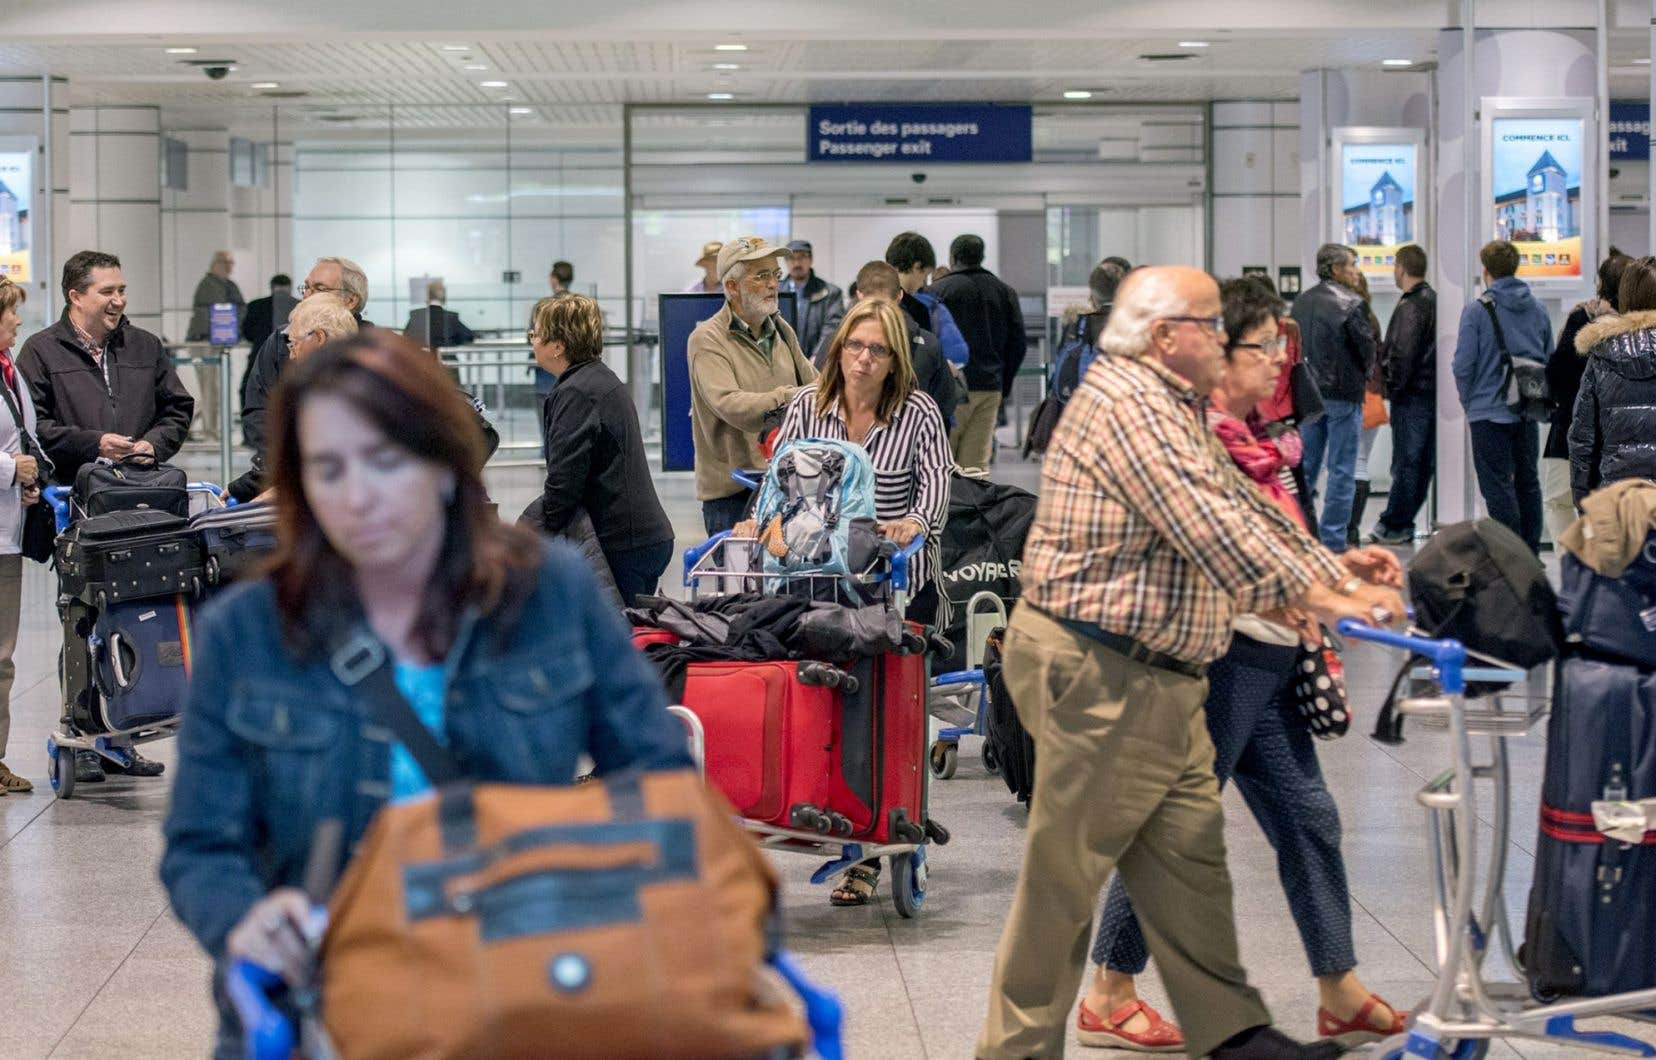 Le nombre de passagers aériens atteindra les 7,3 milliards en 2034, selon l'Association internationale du transport aérien (IATA).